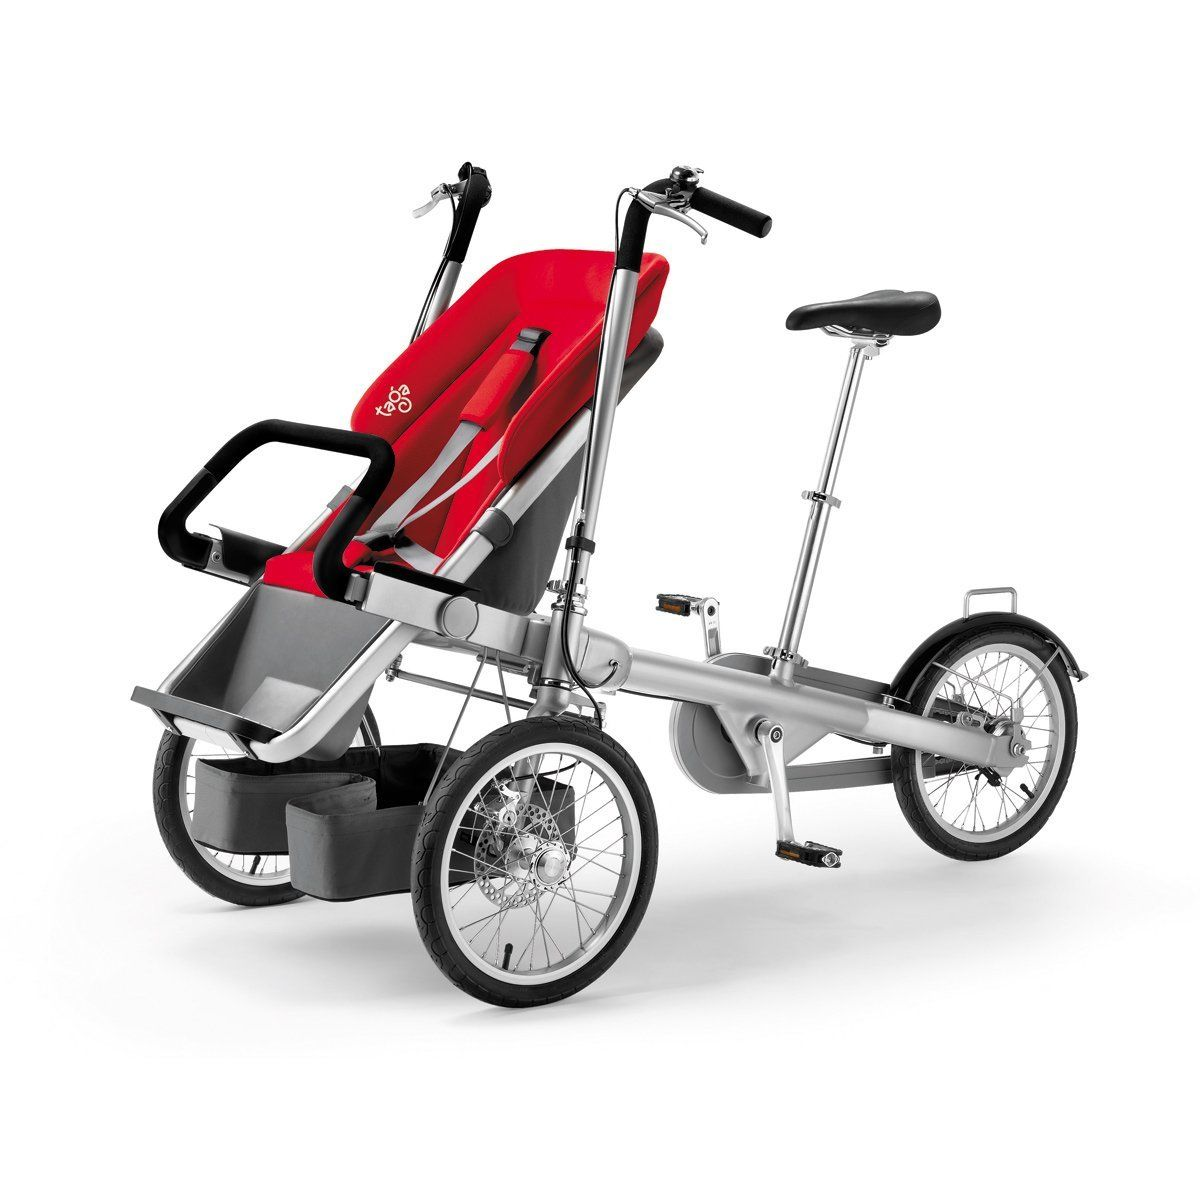 17 Best images about New era: Stroller on Pinterest | Baby ...